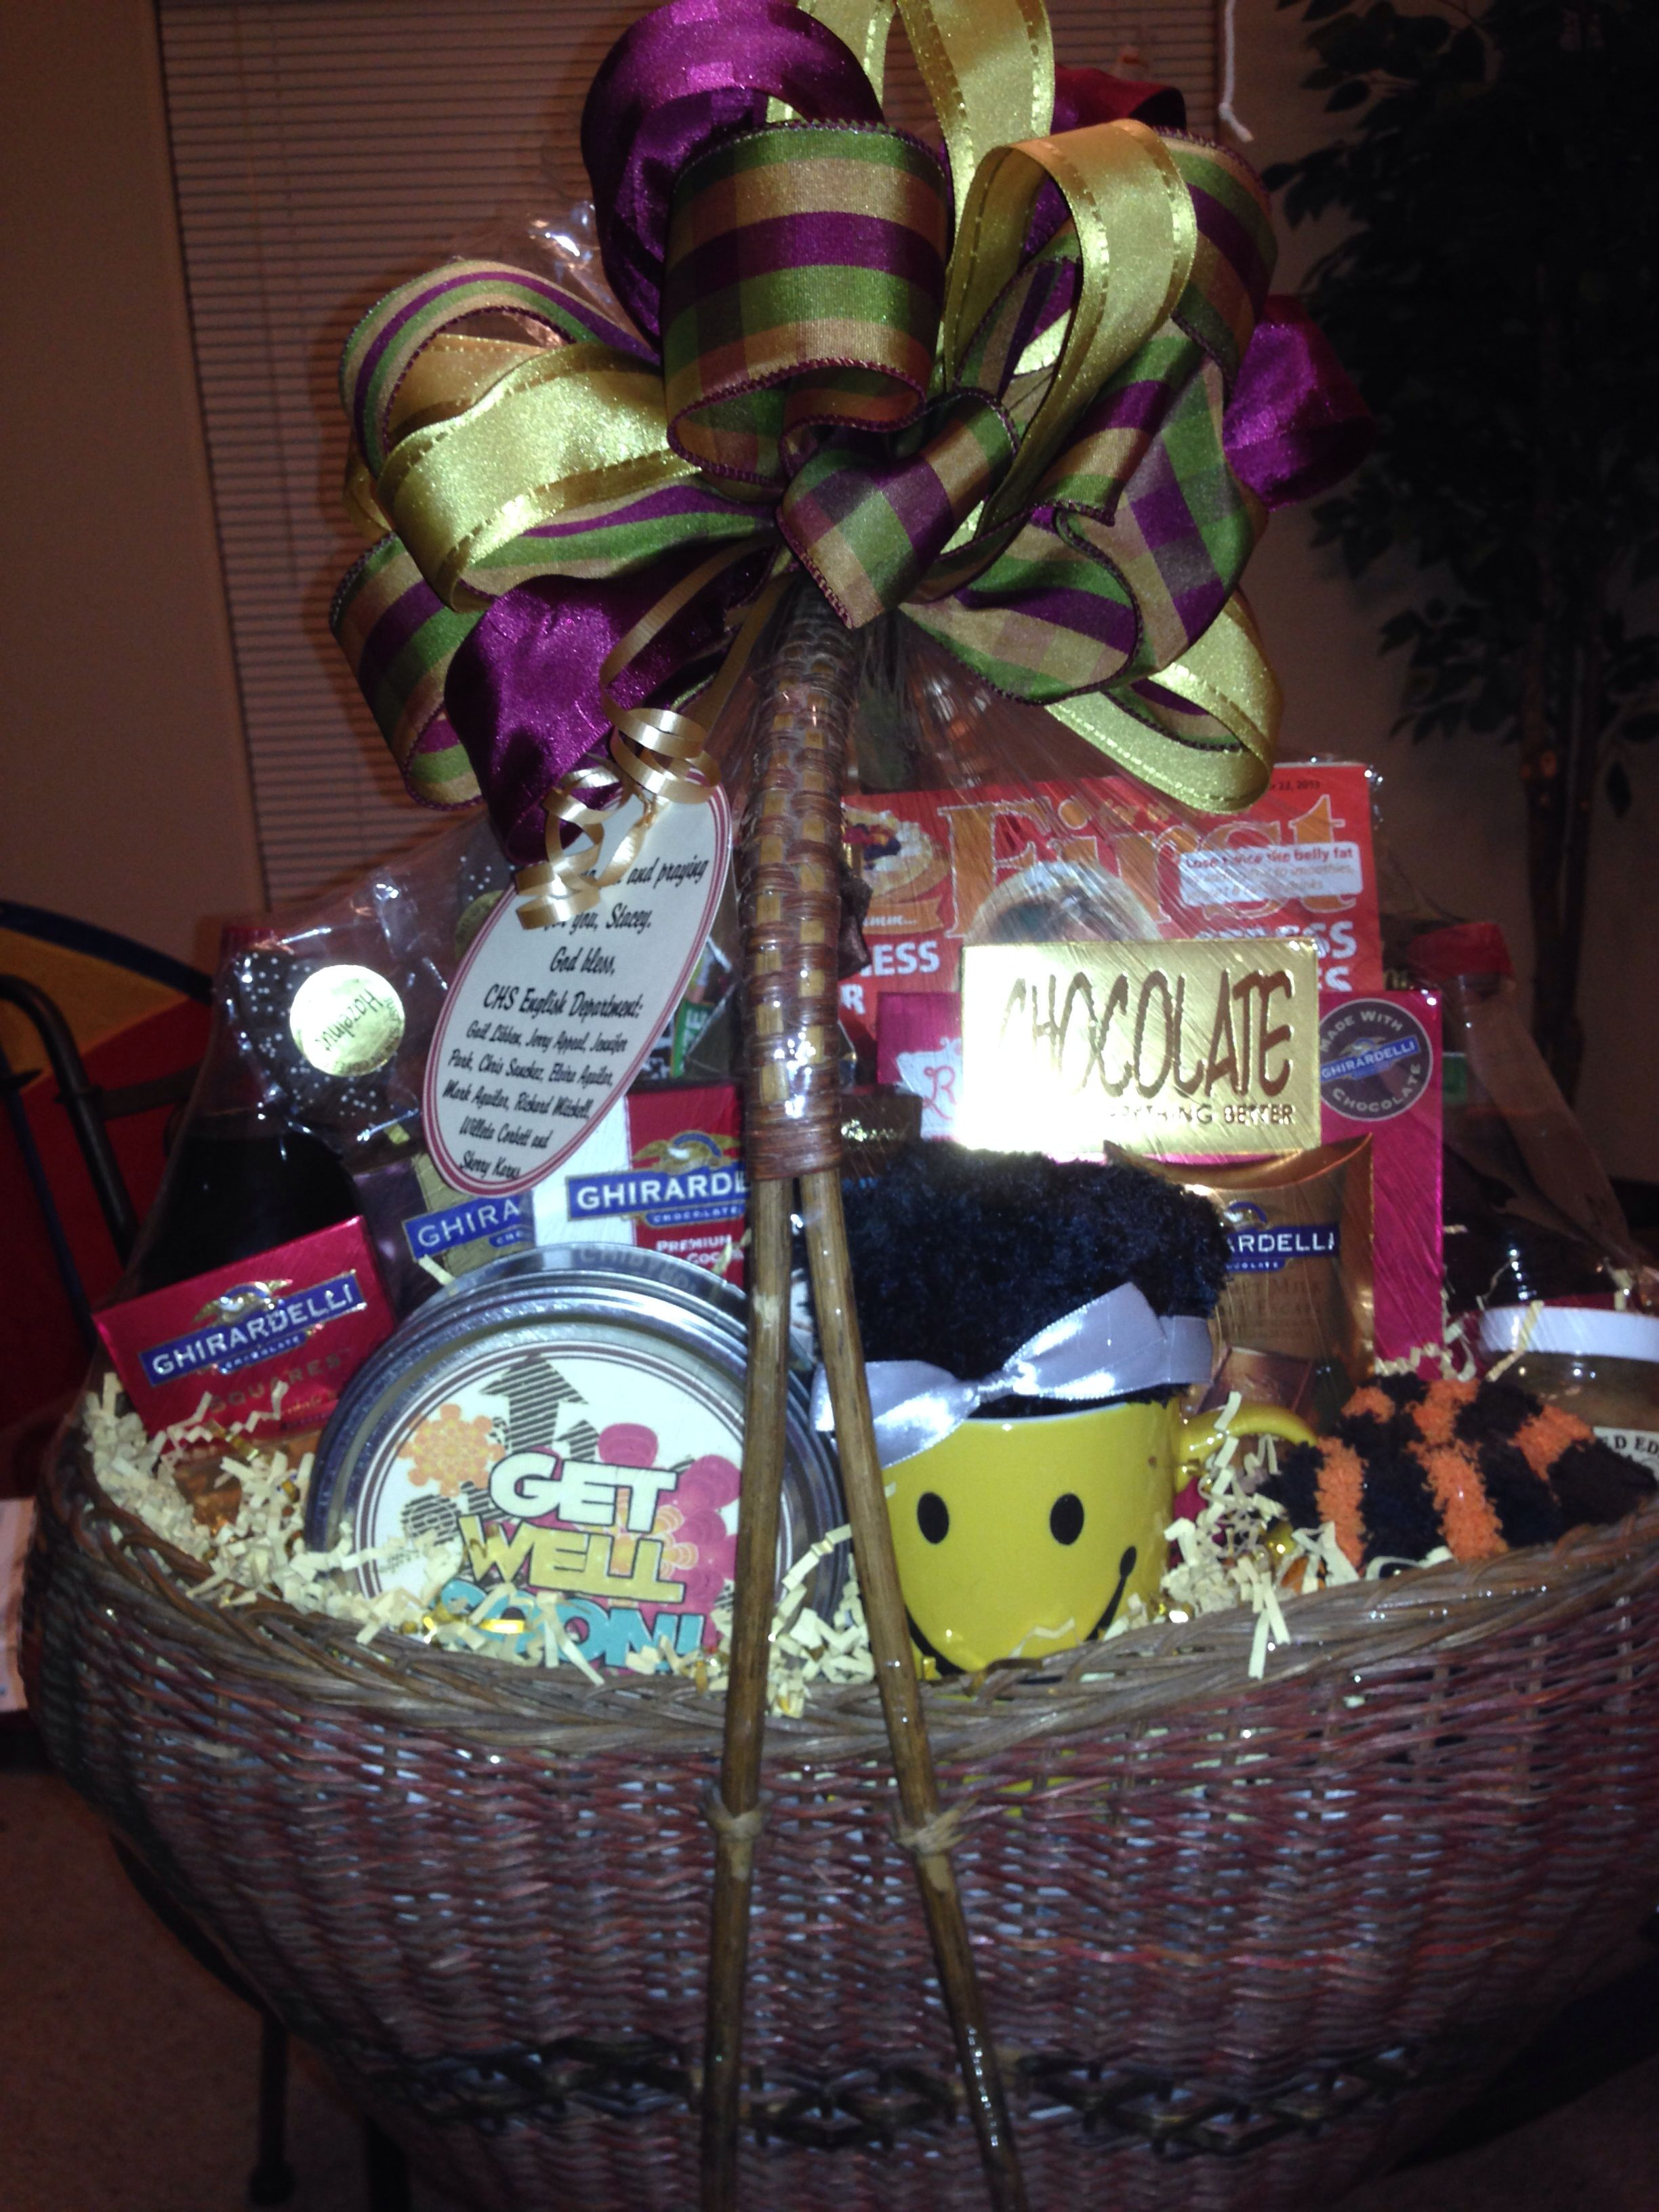 Beautiful gift basket from my friends at work with